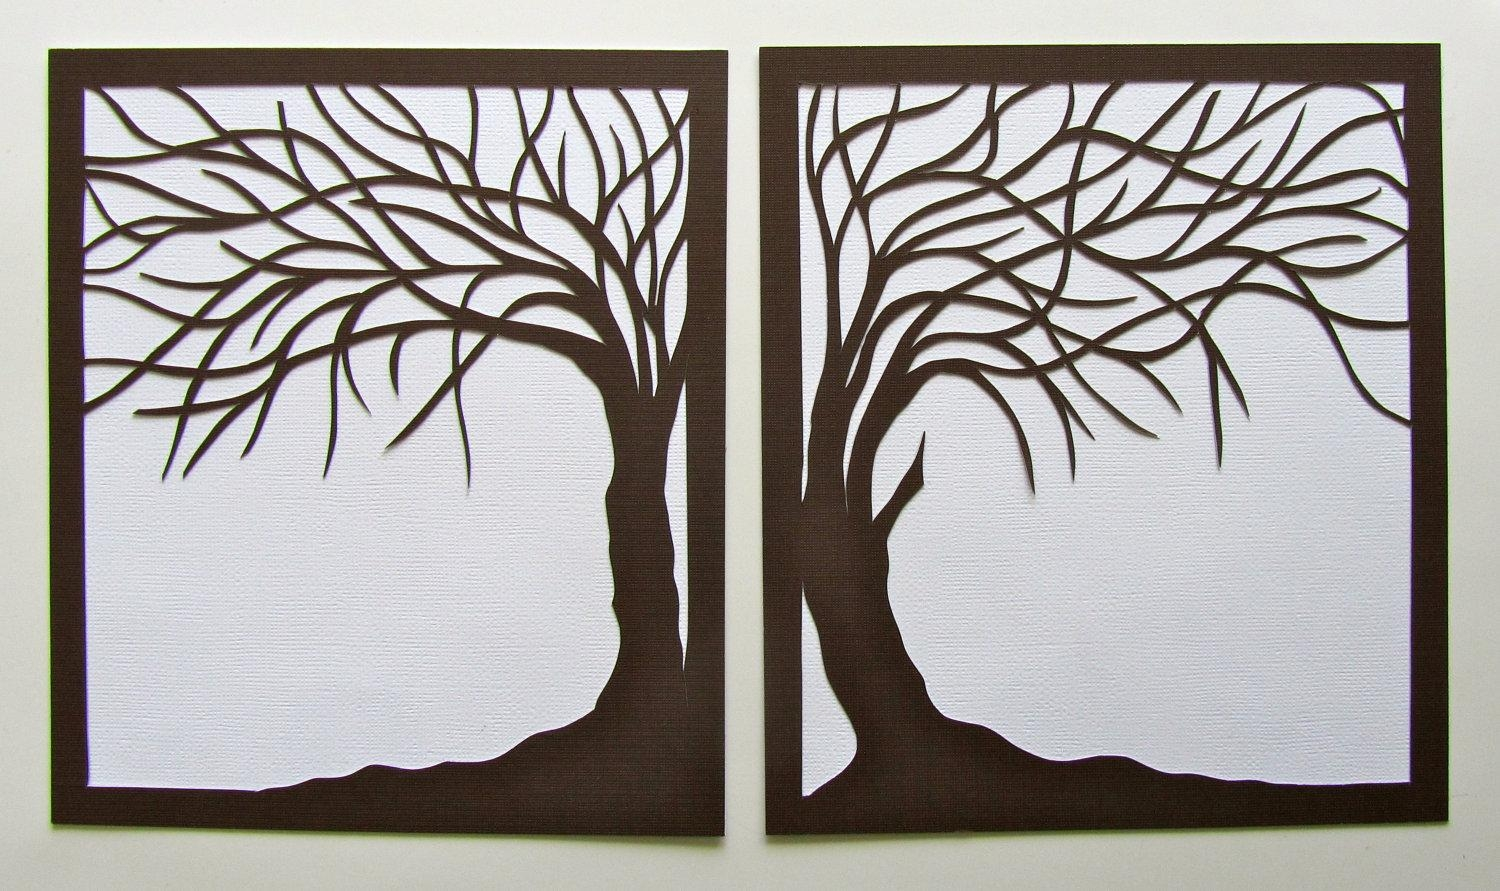 2 Trees Of Life Silhouette Paper Cut In Brown Over White Inside Celtic Tree Of Life Wall Art (Image 1 of 20)